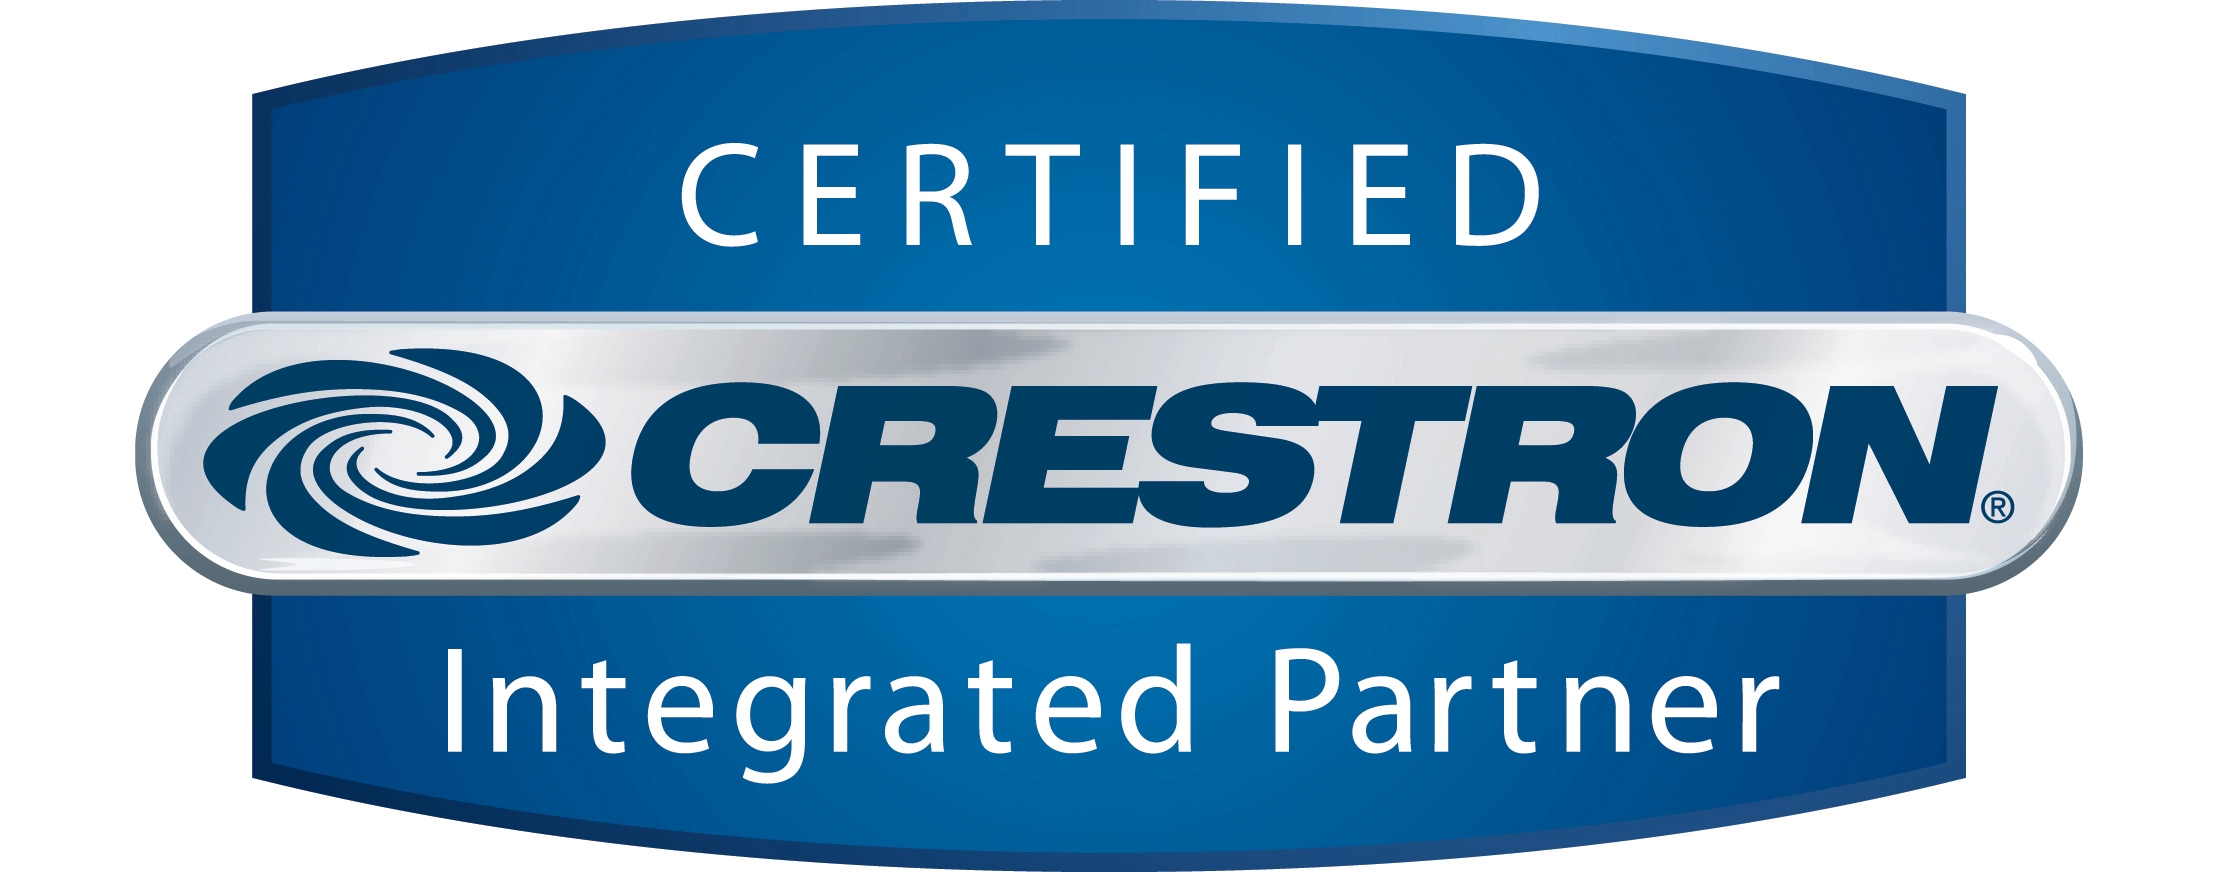 Sennheiser certified as Crestron partner